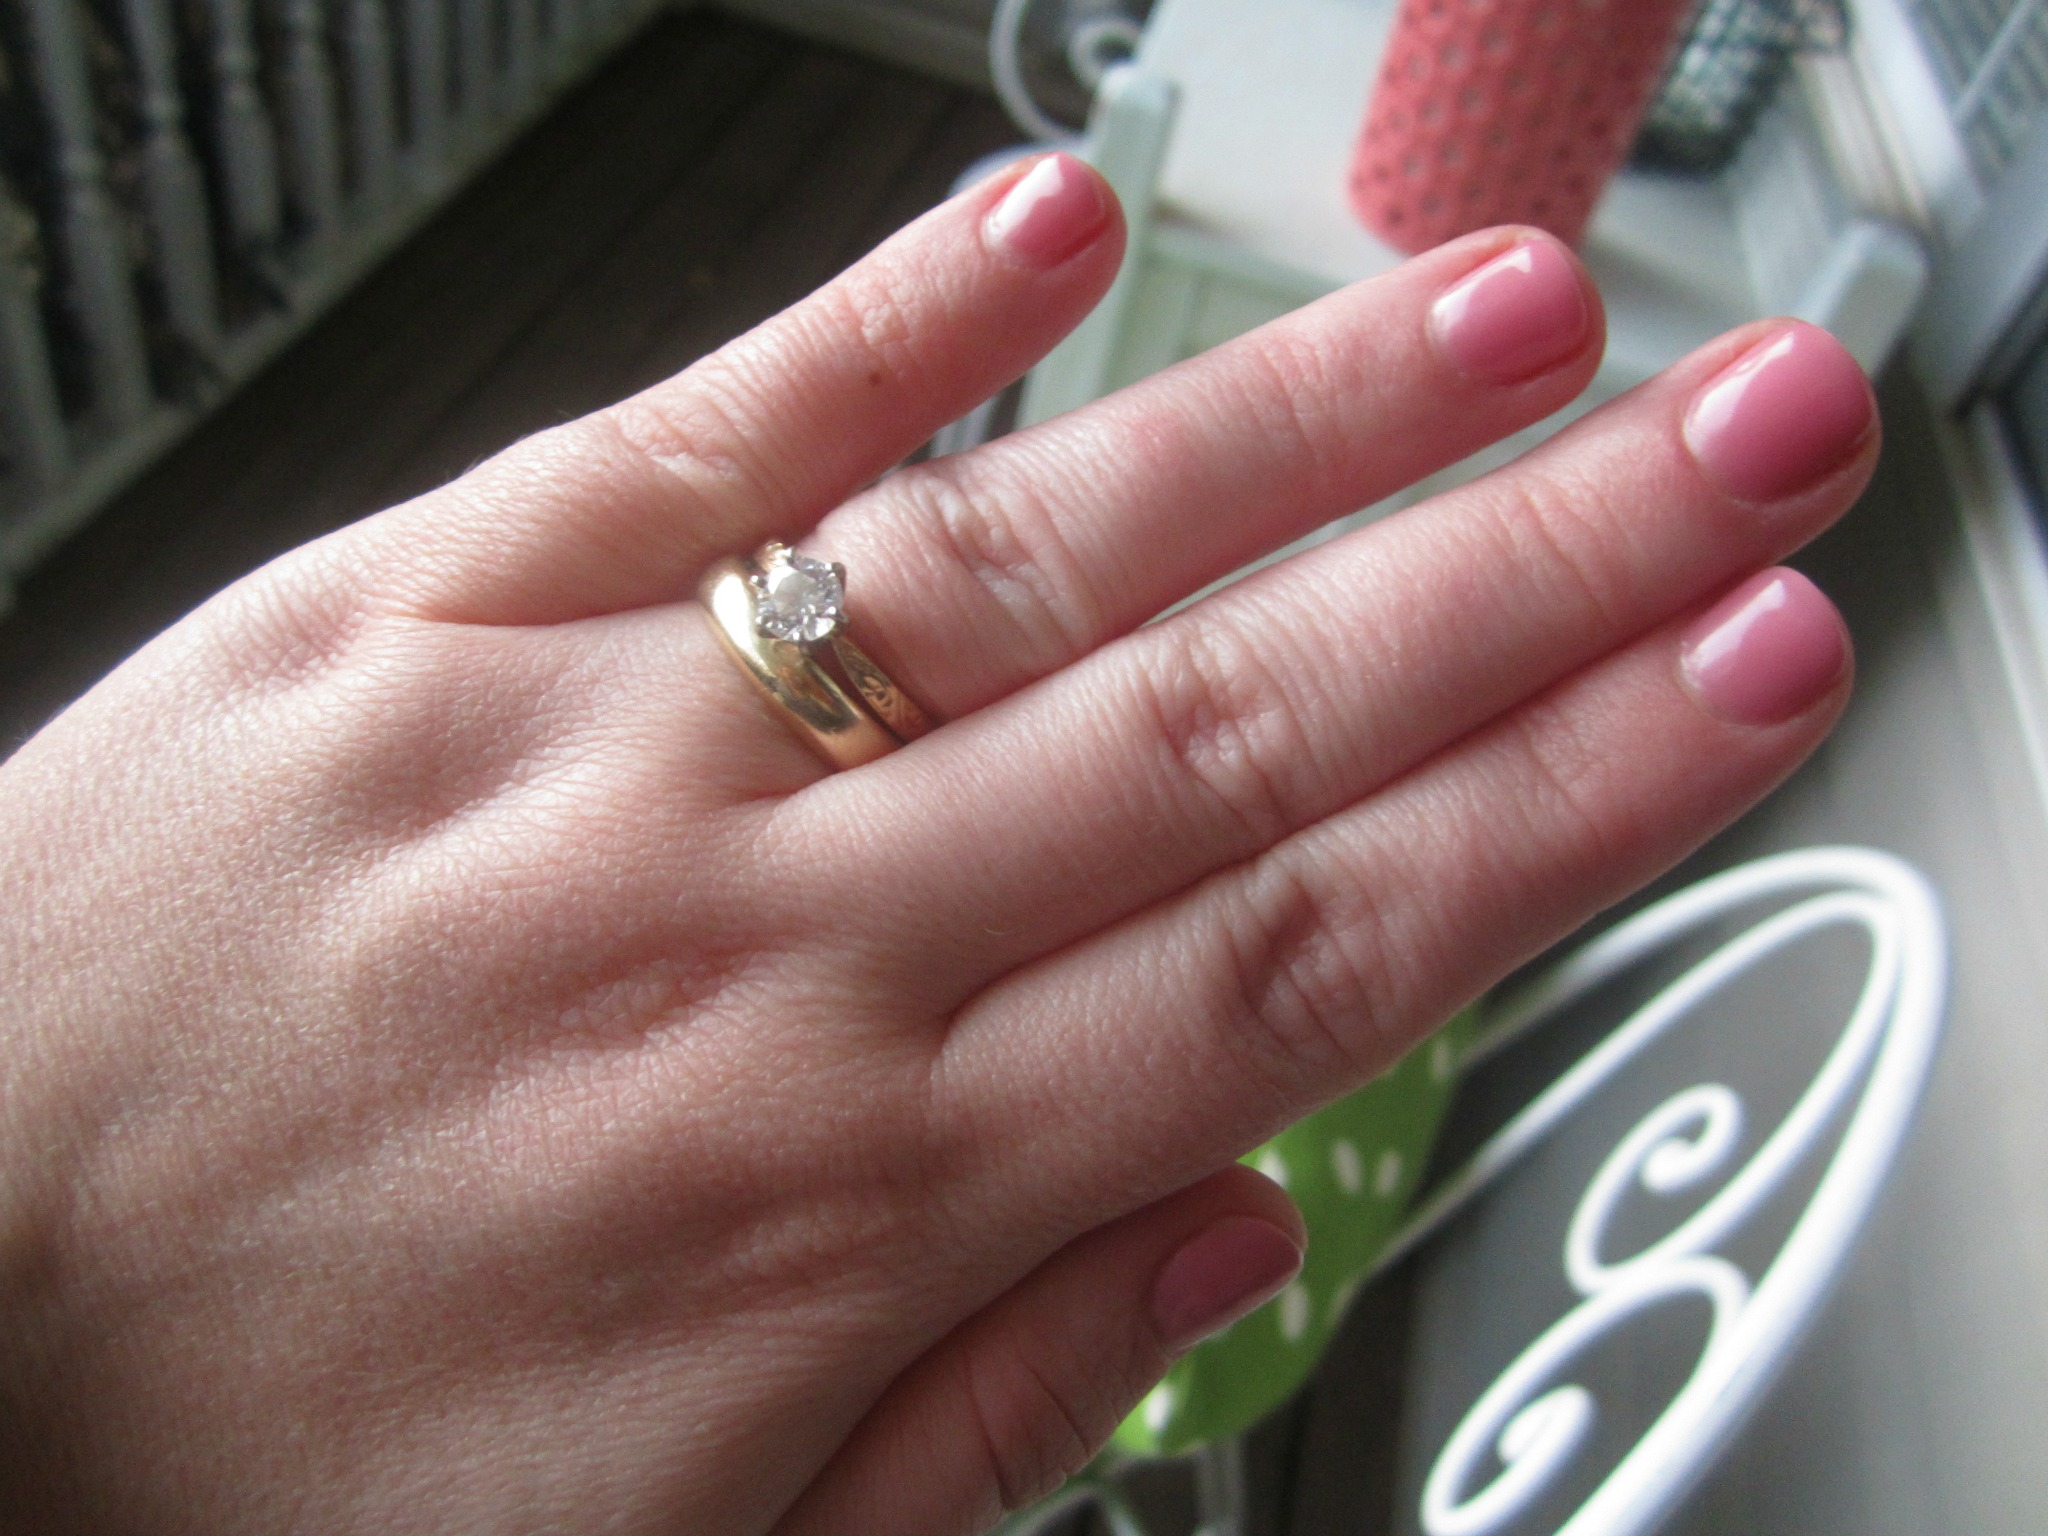 Monday Randomness: Dinner Out, A Gel Manicure and Great Friends |